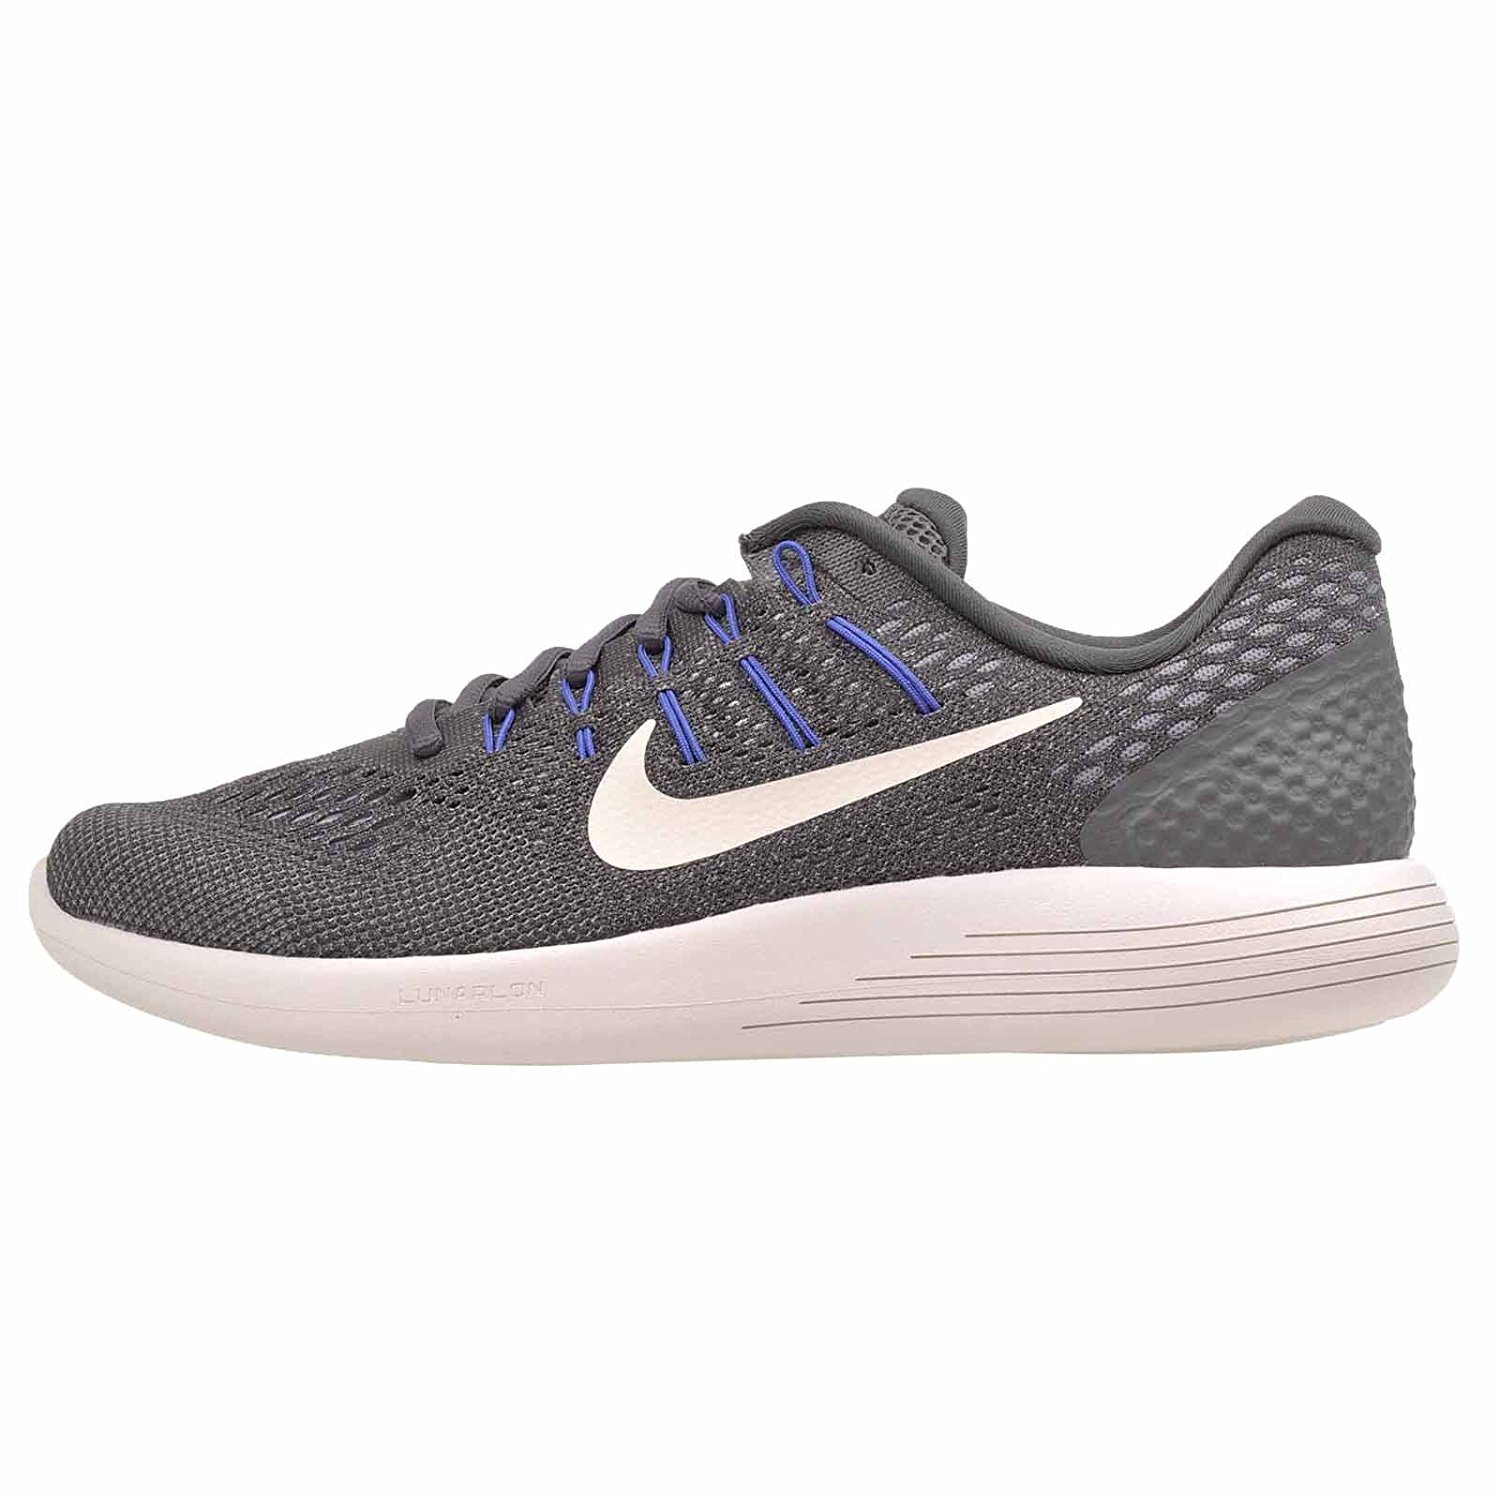 a7f8539f34654 Galleon - NIKE Lunarglide 8 Mens Running Shoes (13 D(M) US